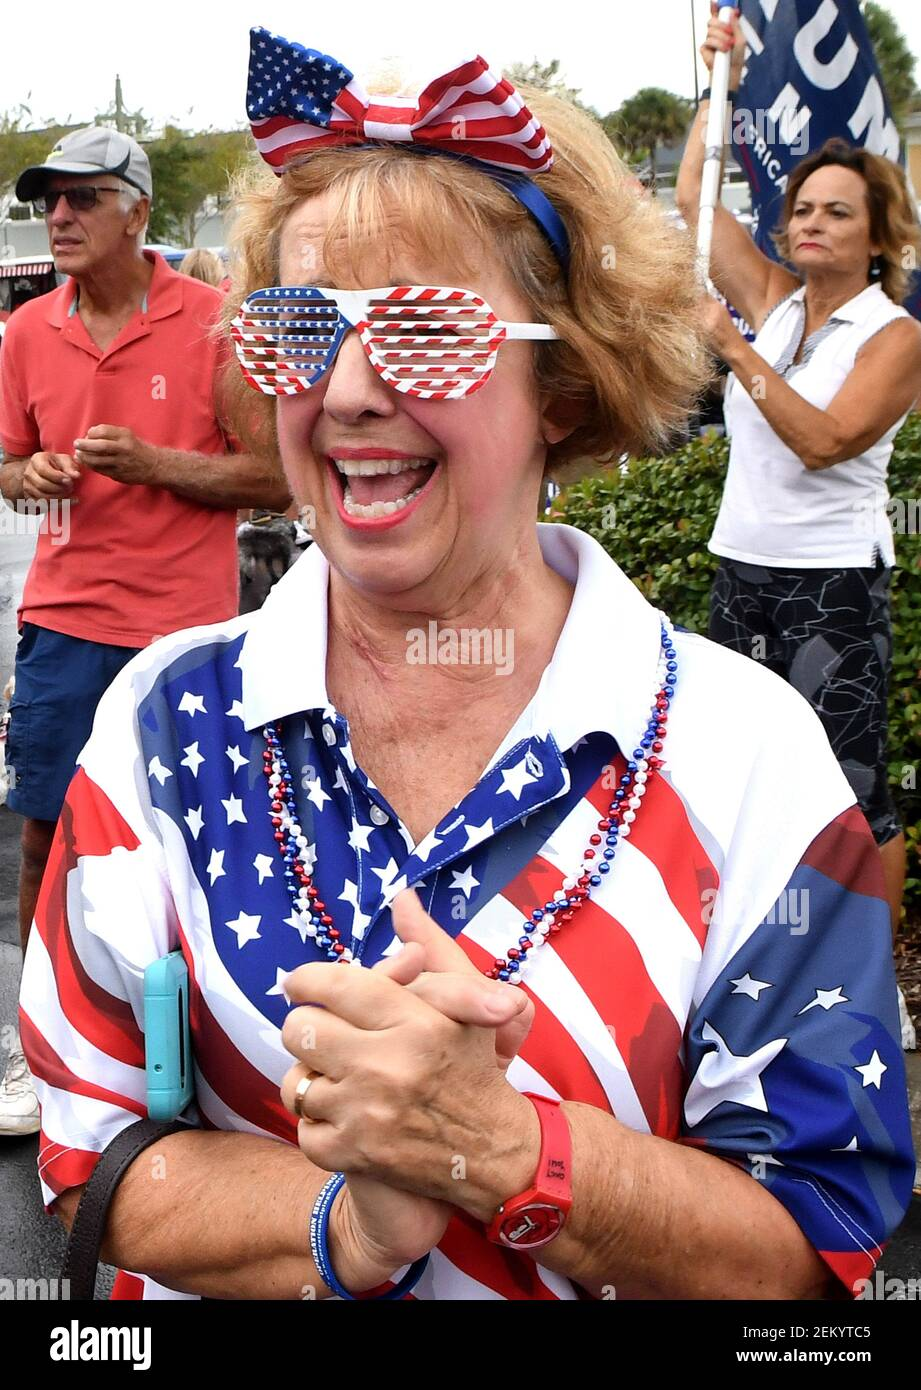 Denise Lyonnais wears patriotic clothing at a golf cart parade in support of U.S. President Donald Trump the day after Trump lost the 2020 U.S. presidential election to former Vice President Joe Biden. Prior to the parade, supporters sang patriotic songs, they prayed for Mr. Trump, and they collected donations for Trump's legal fees to contest the election results. (Photo by Paul Hennessy / SOPA Images/Sipa USA) Stock Photo